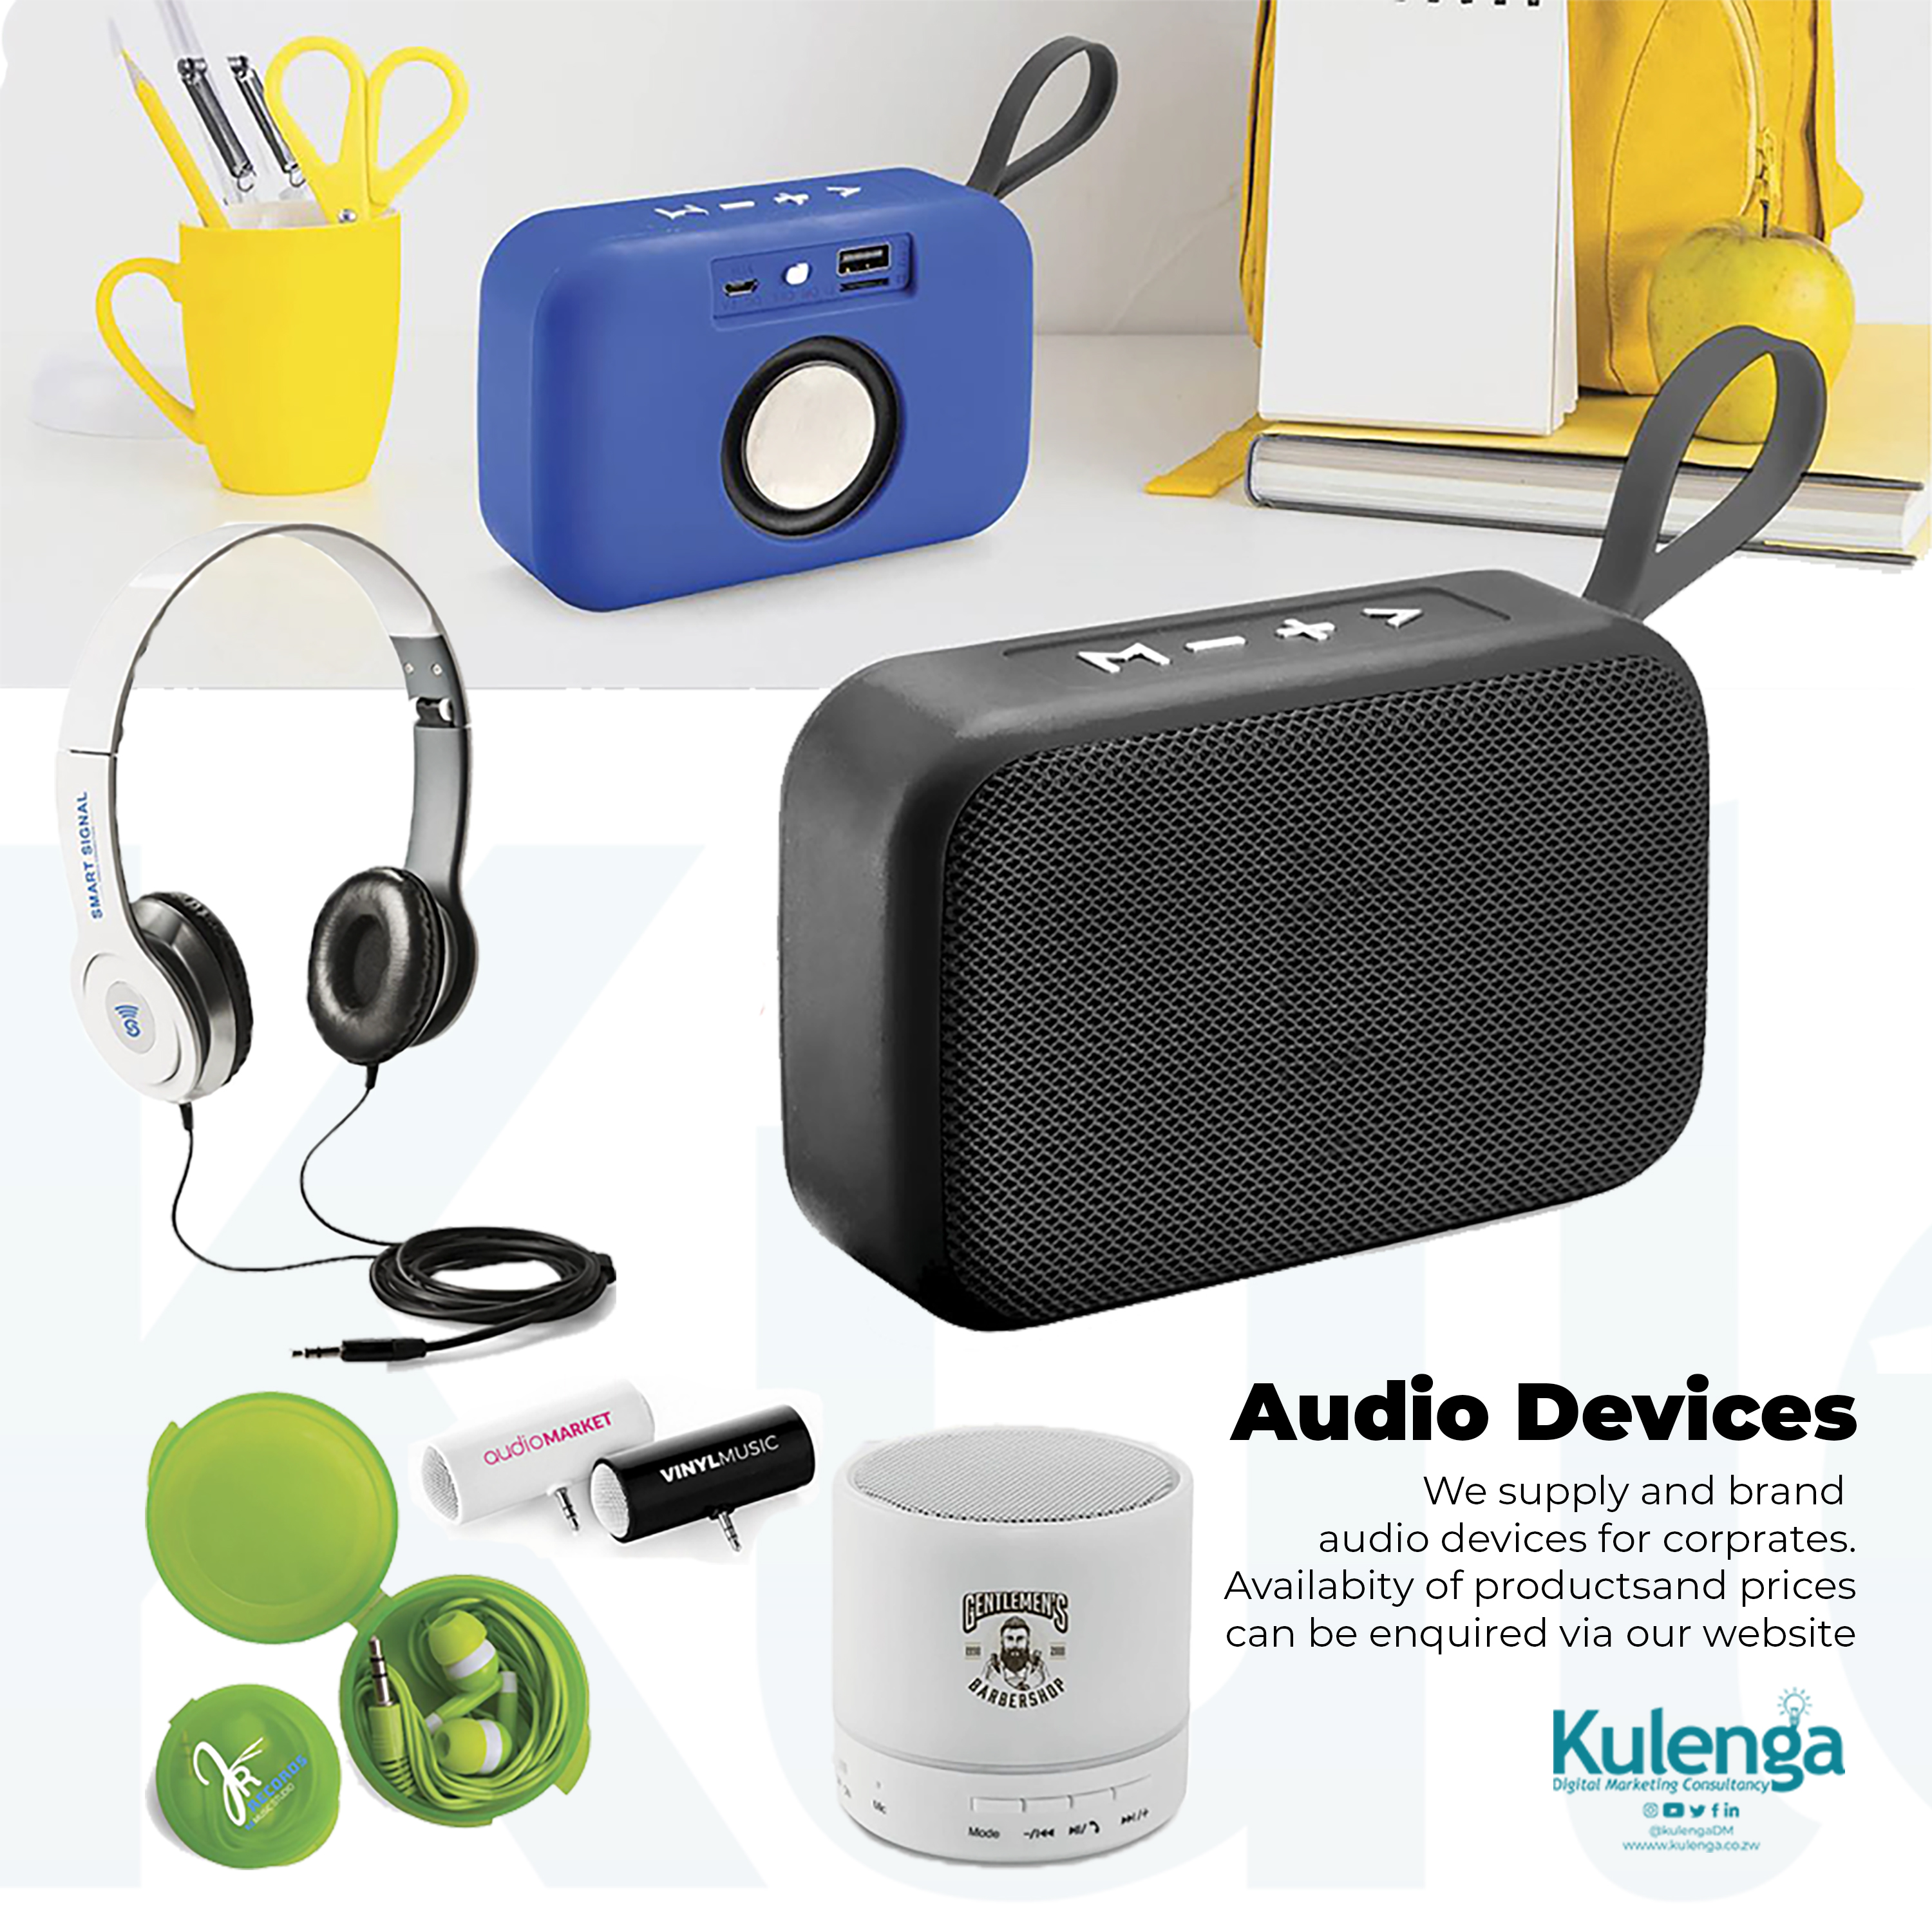 Audio Devices